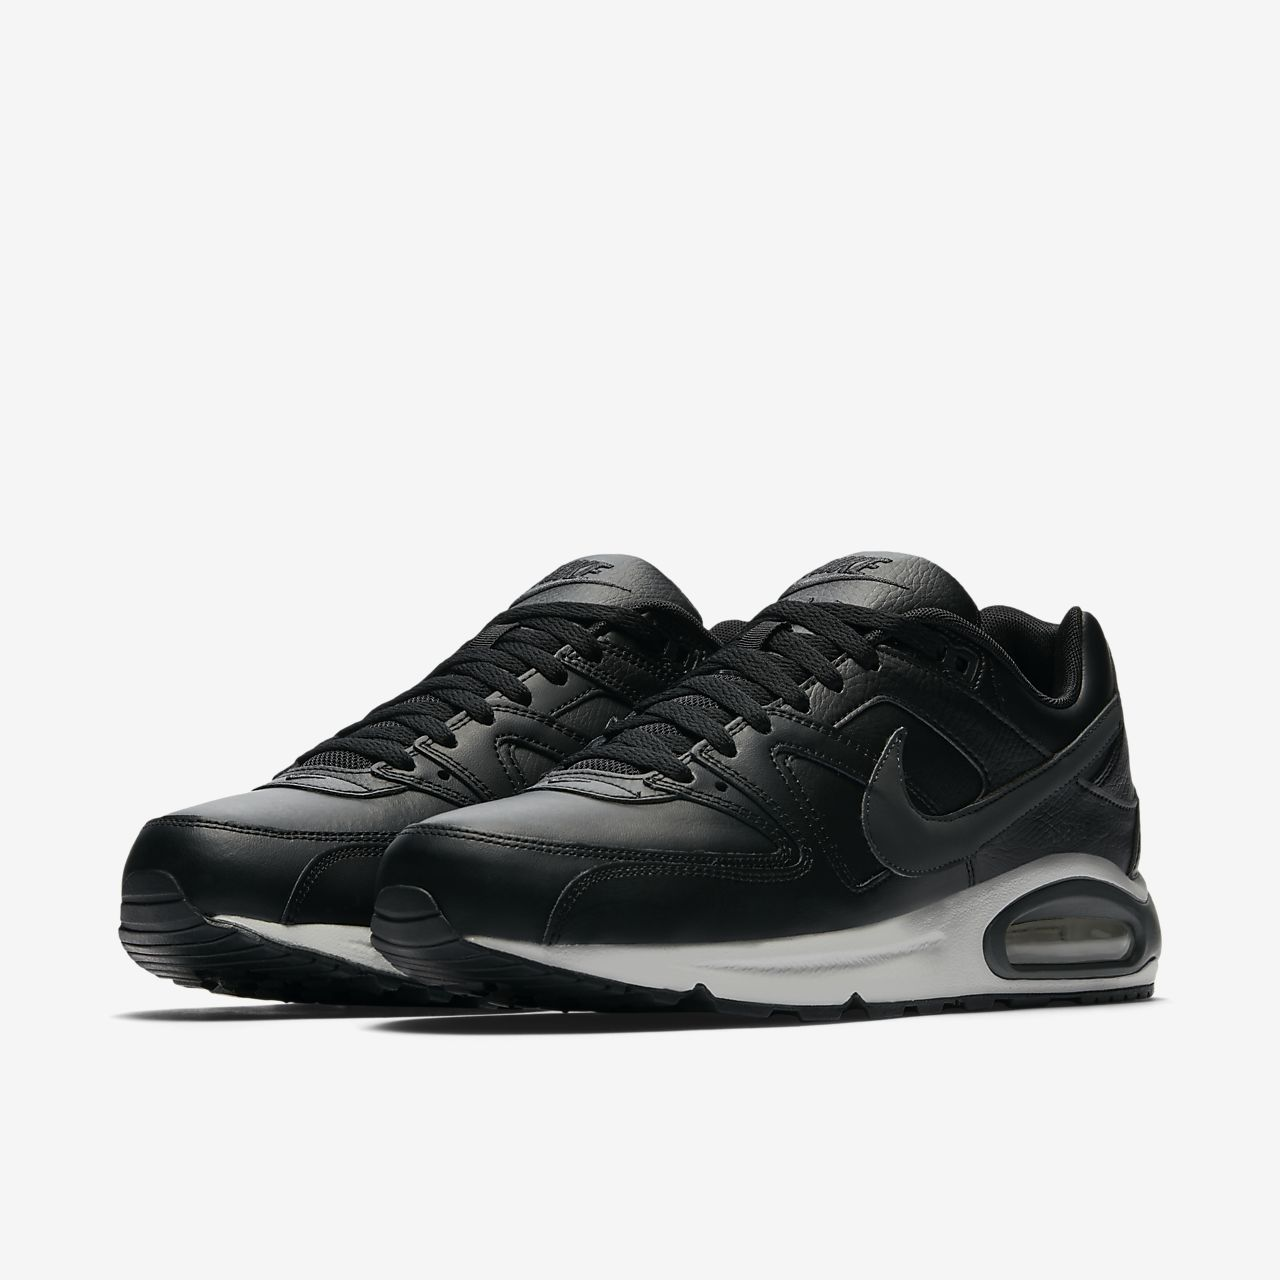 df4bed63240 Nike Air Max Command Men s Shoe. Nike.com GB